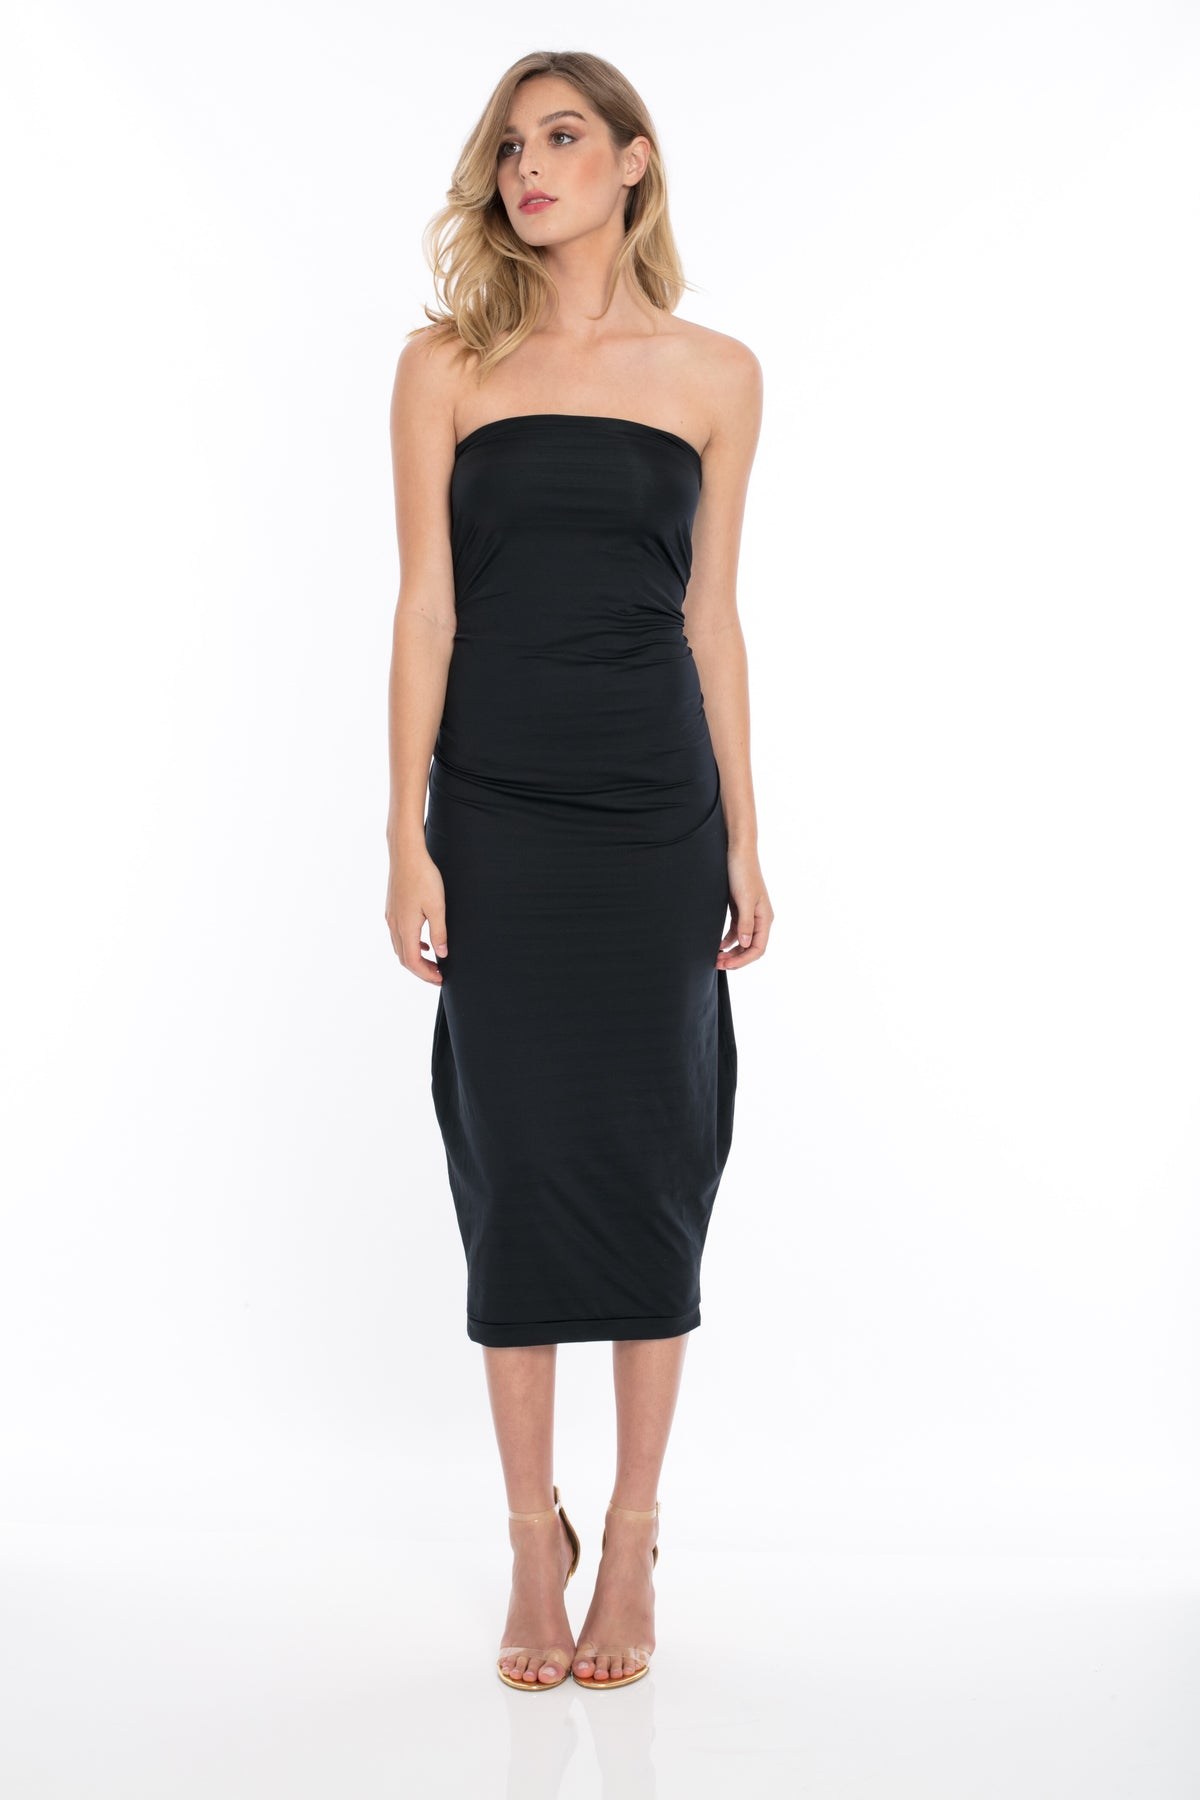 Morph Black Capsule Dress